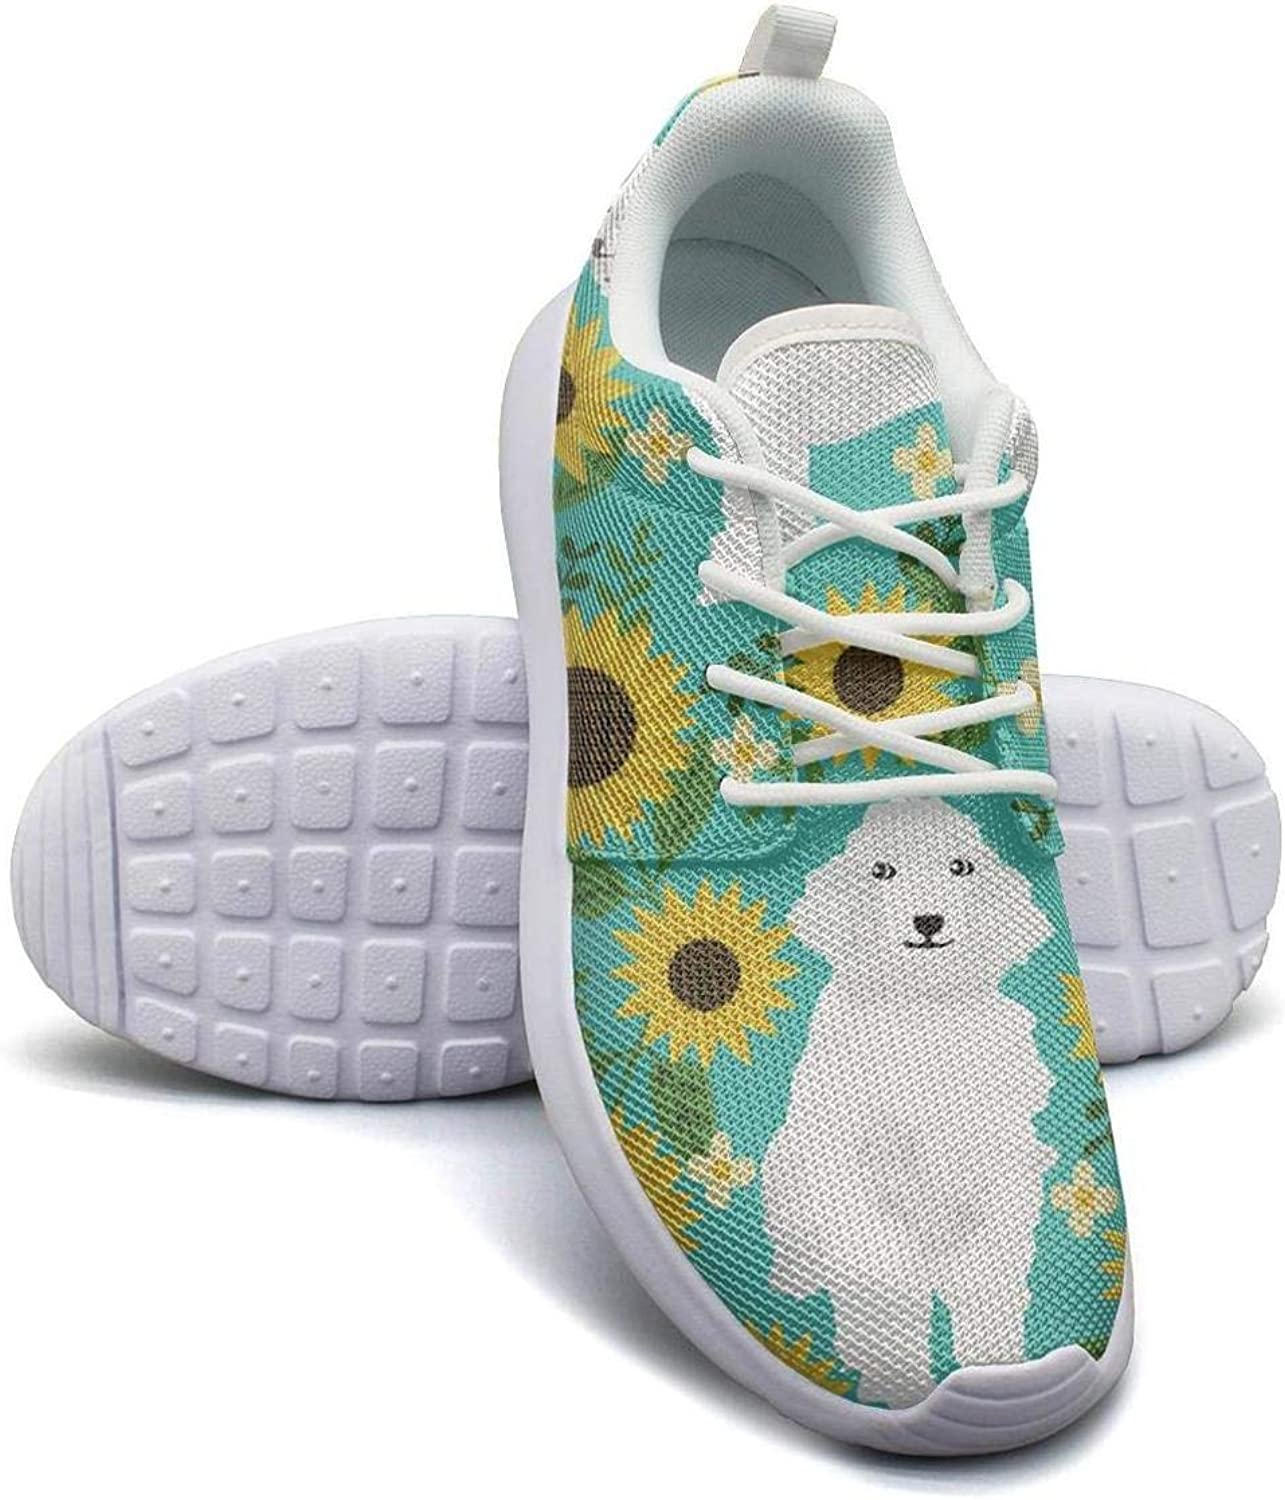 Kanf saysfg Tropical Pink and Yellow Pineapples Fashion Running Sneakers for Women Lightweight Breathabl Boat shoes